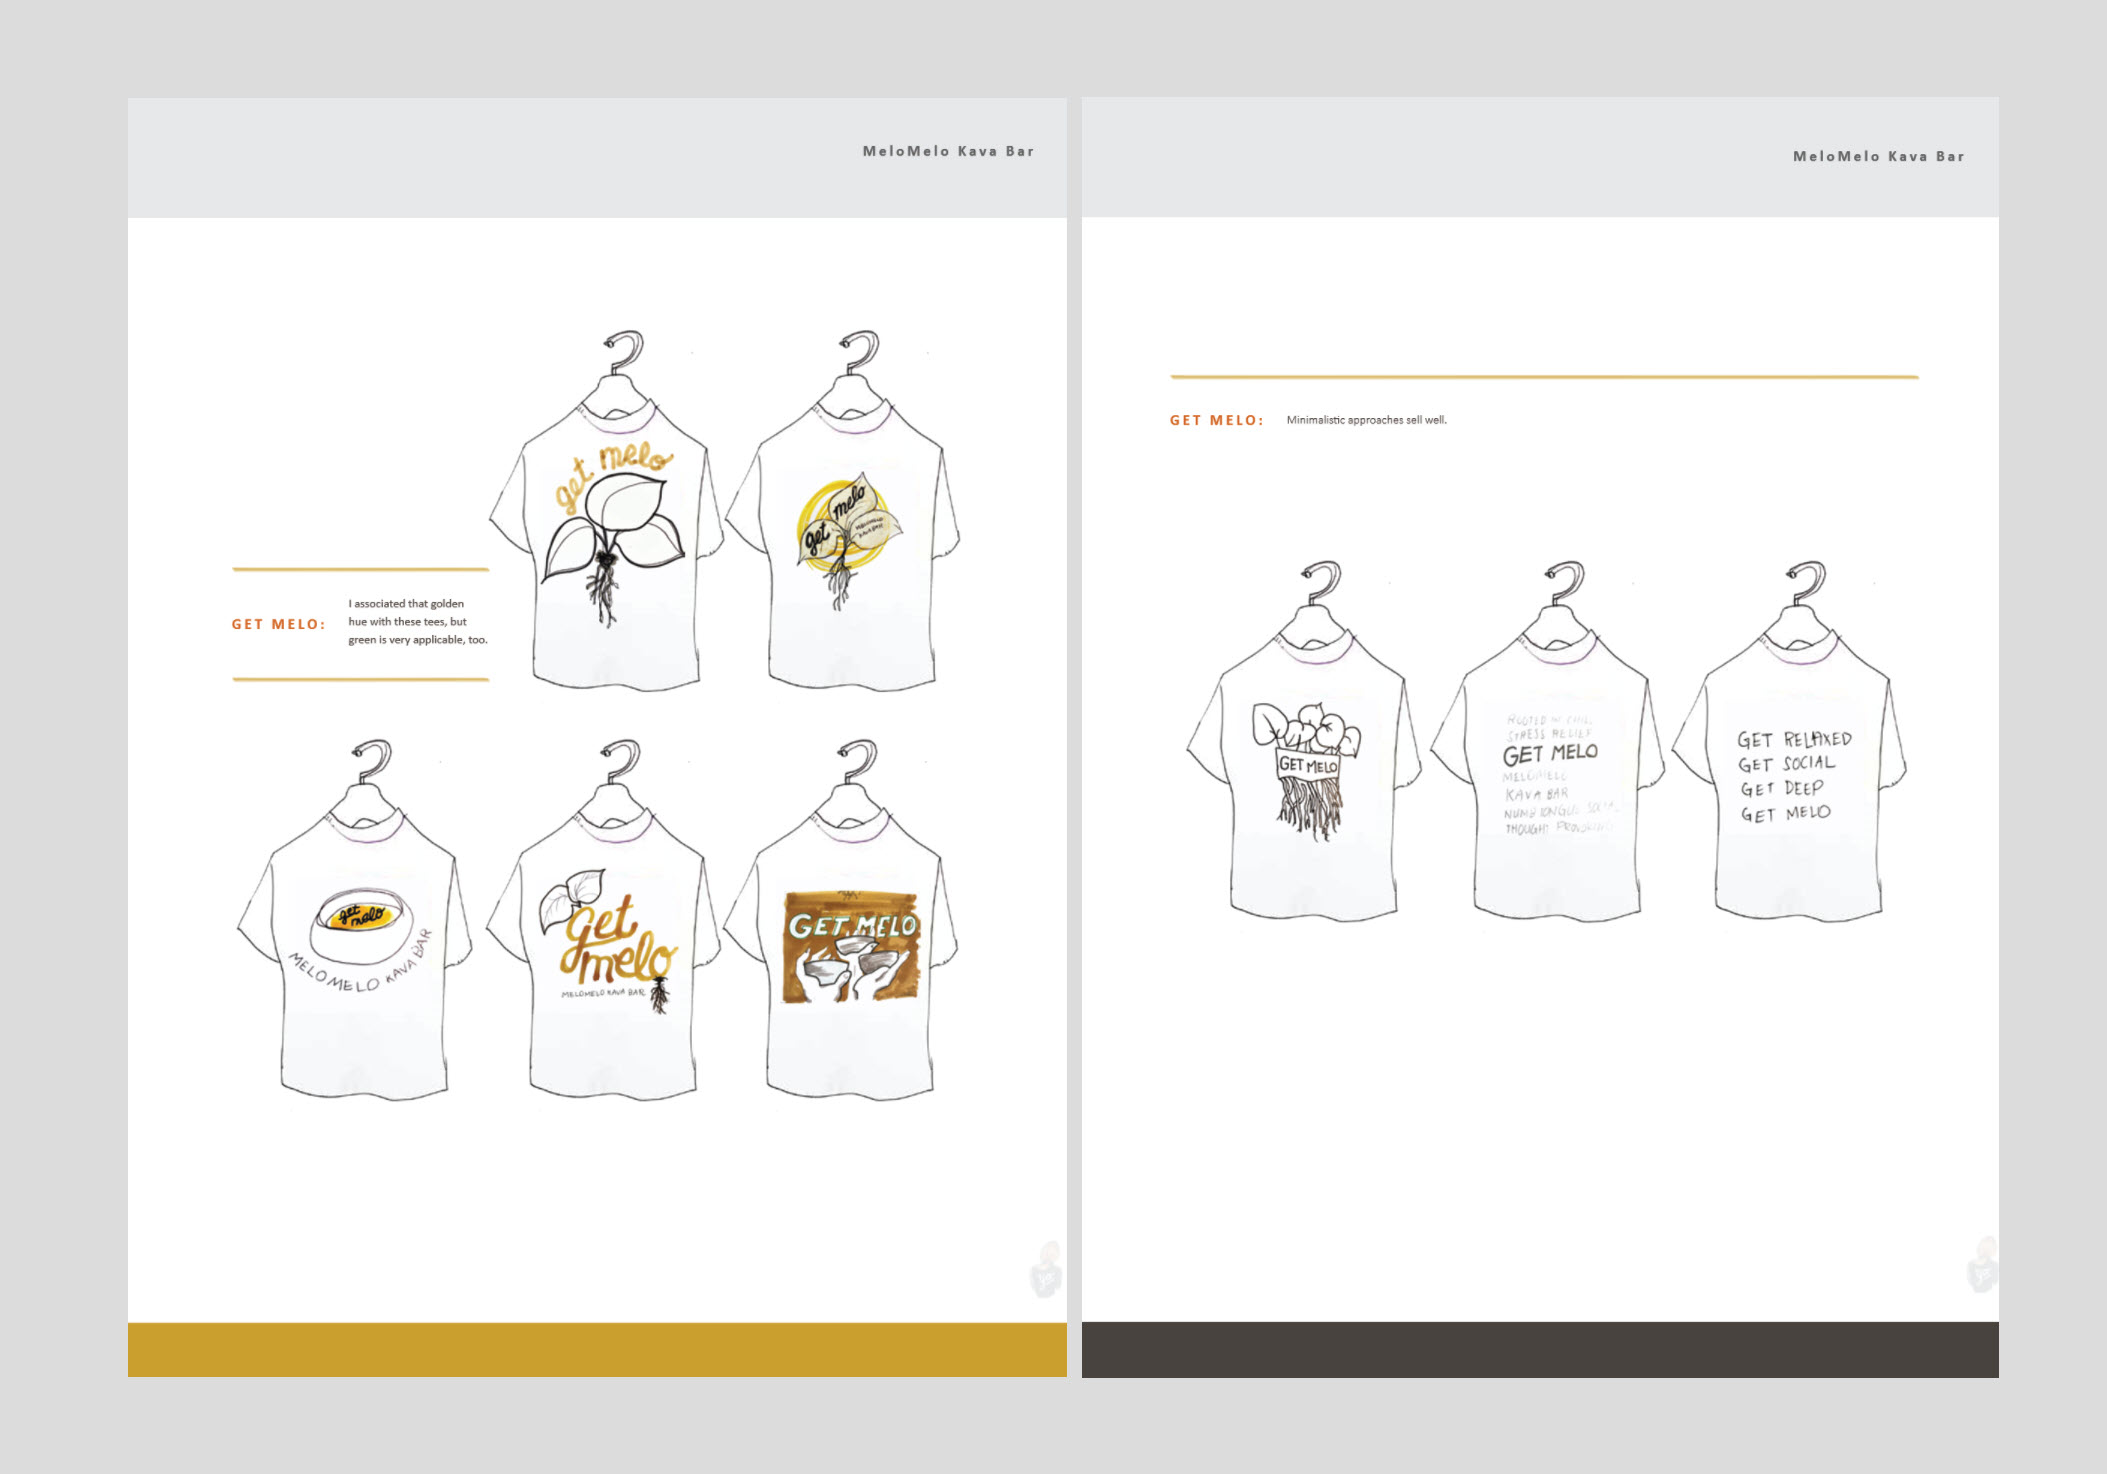 Layout: Concept Art for a Graphic Te